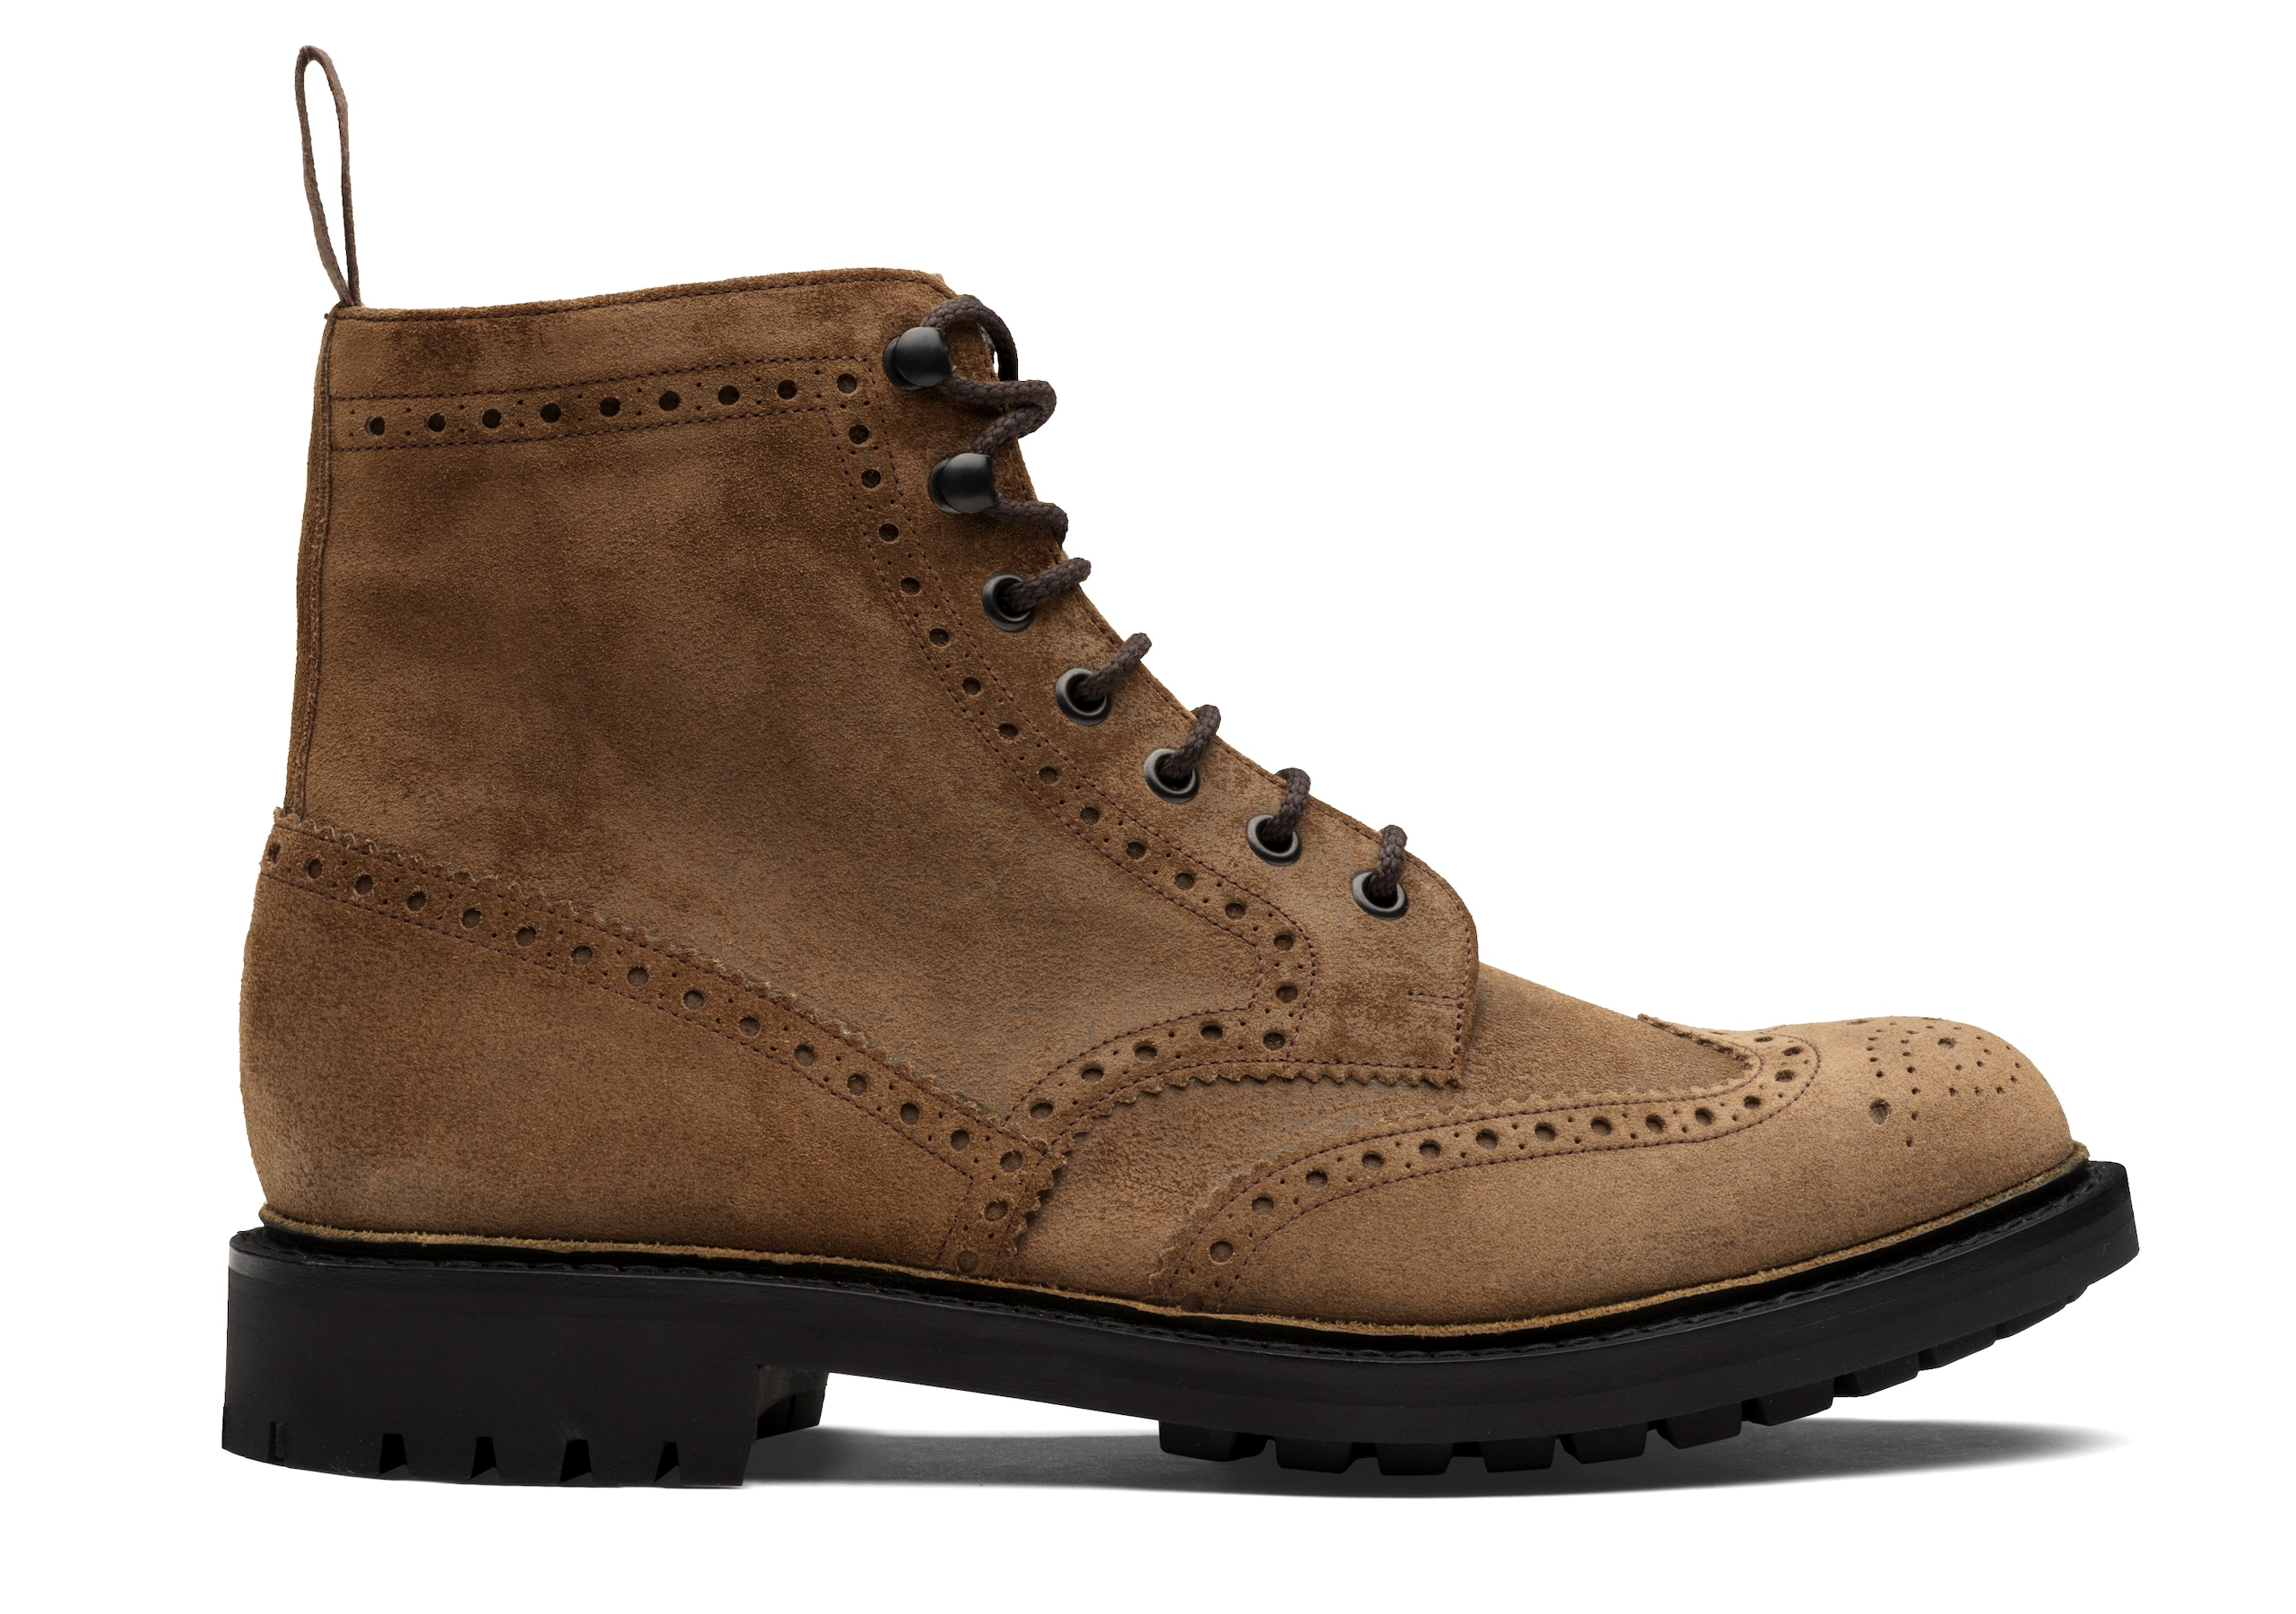 Mac farlane 2 Church's Waxed Suede Lace-Up Boot Brogue Brown